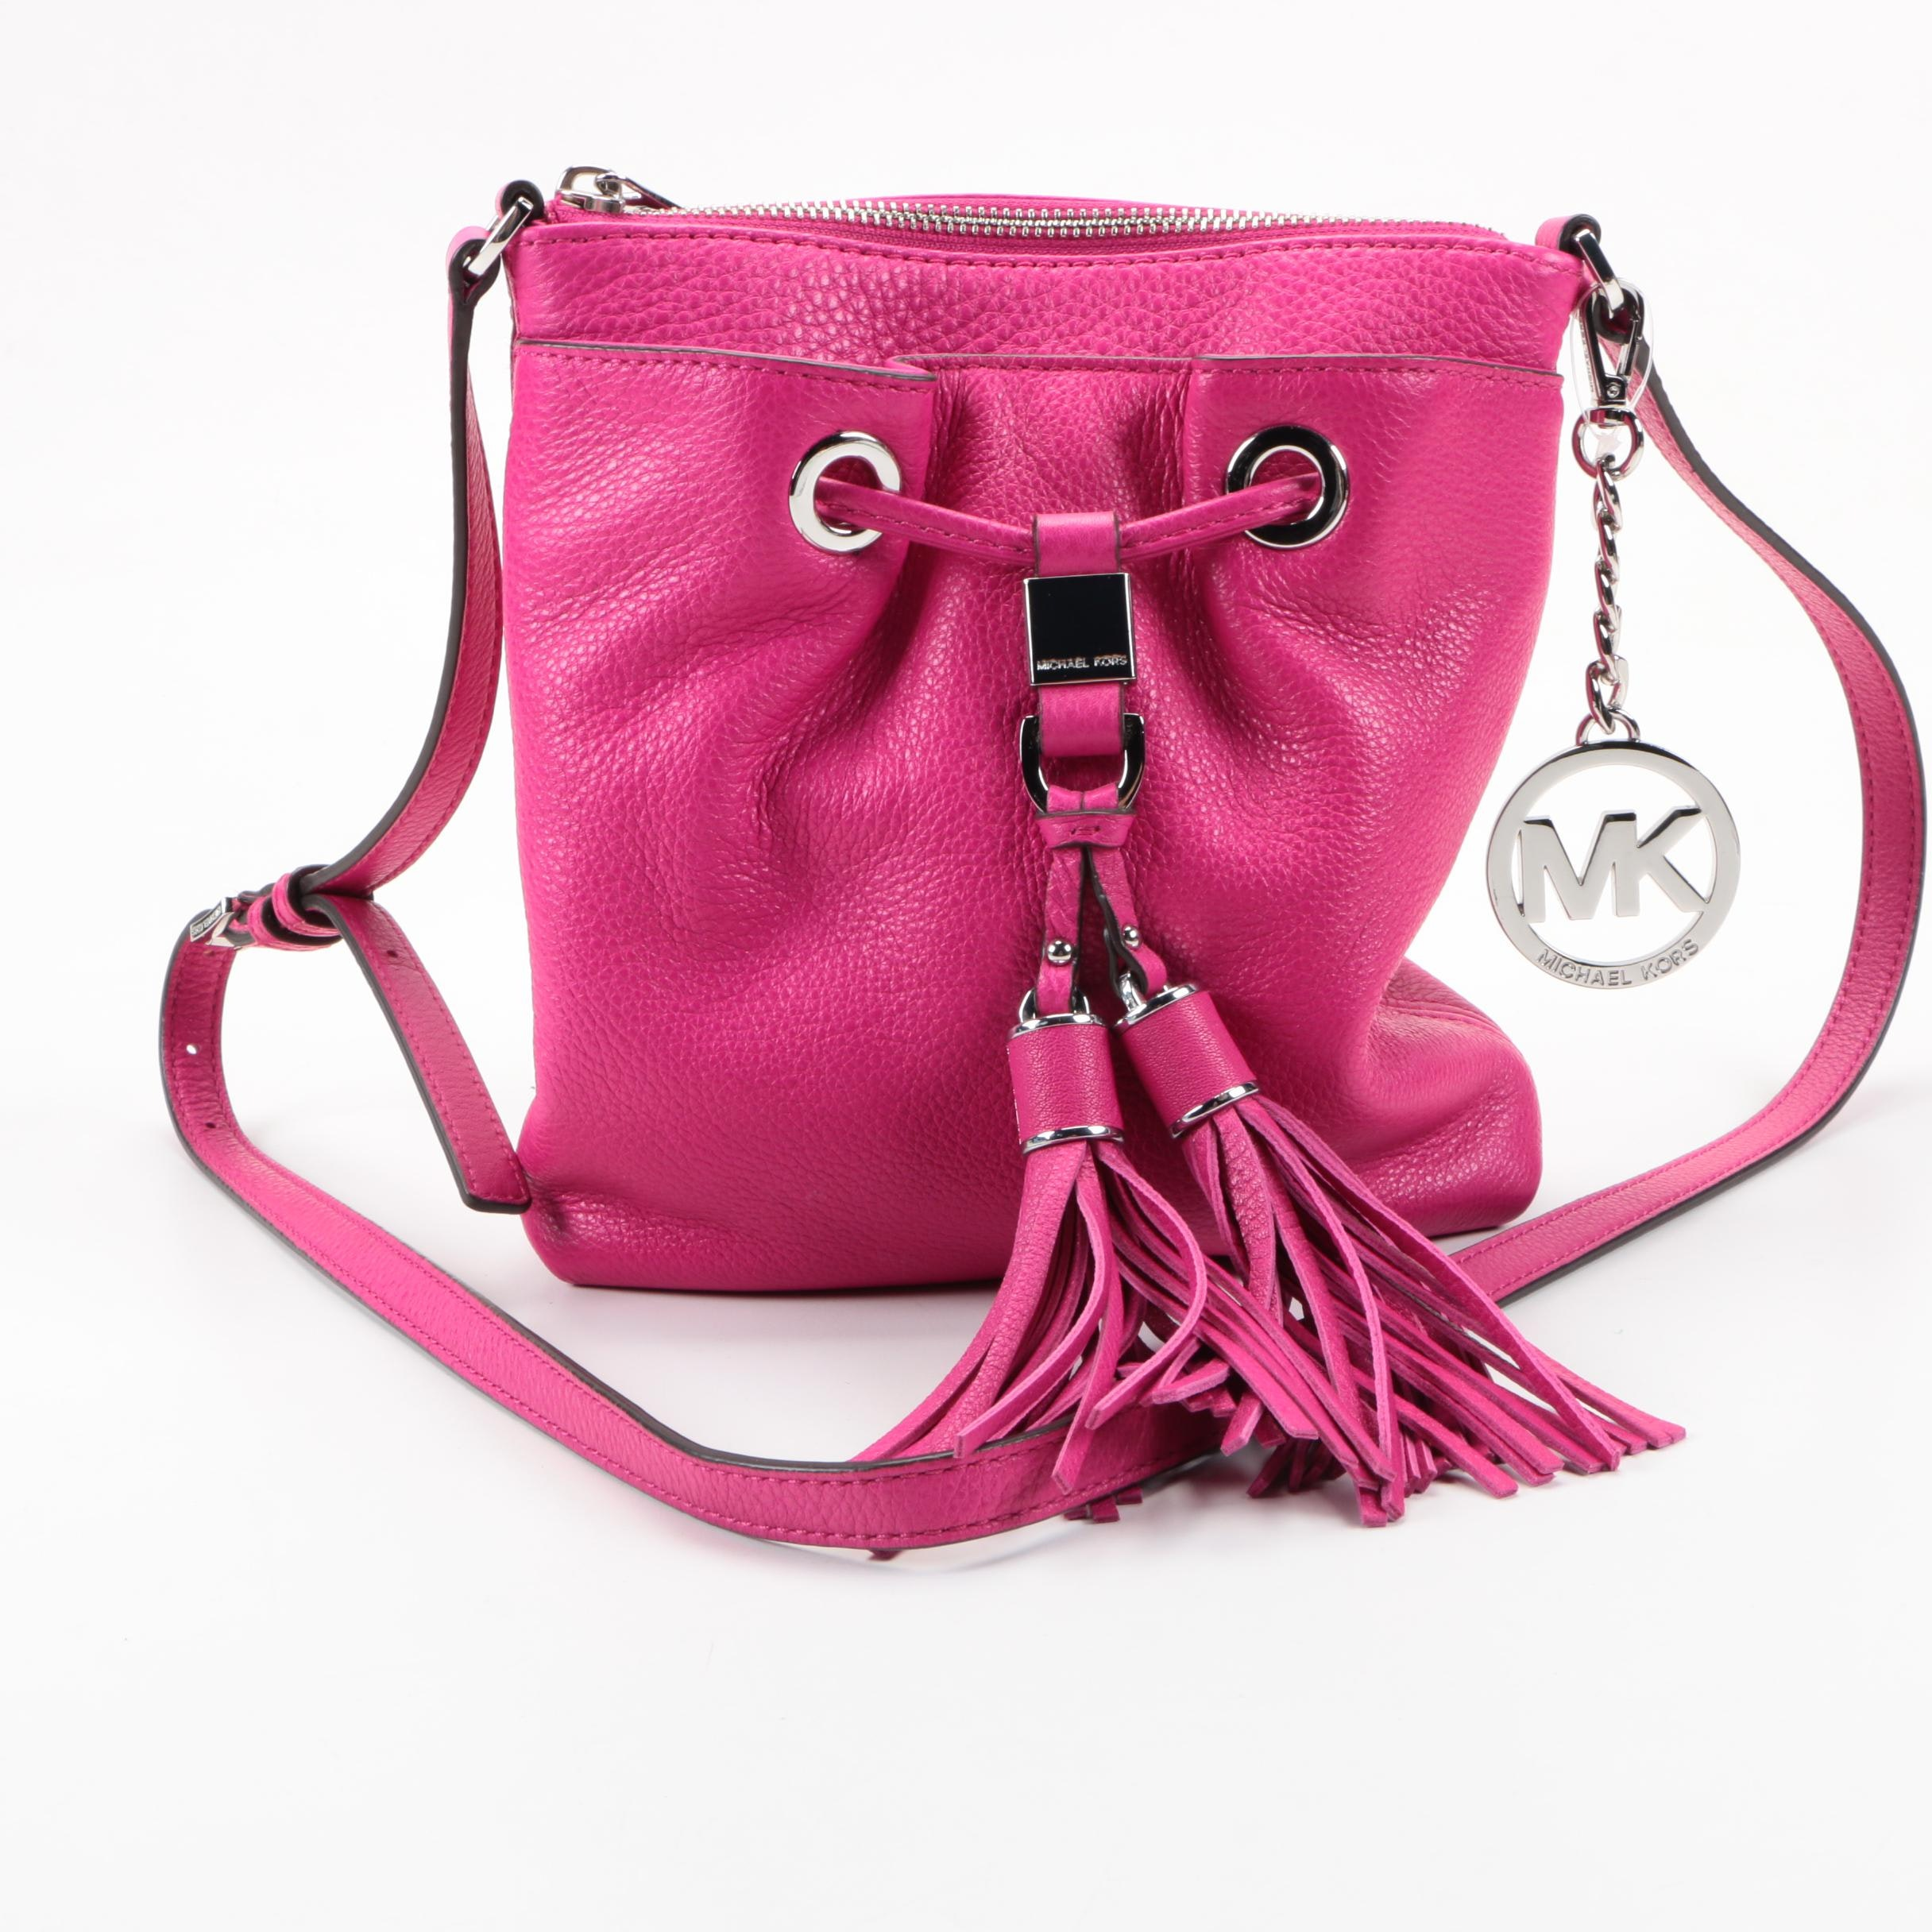 MICHAEL Michael Kors Pink Leather Crossbody Bag